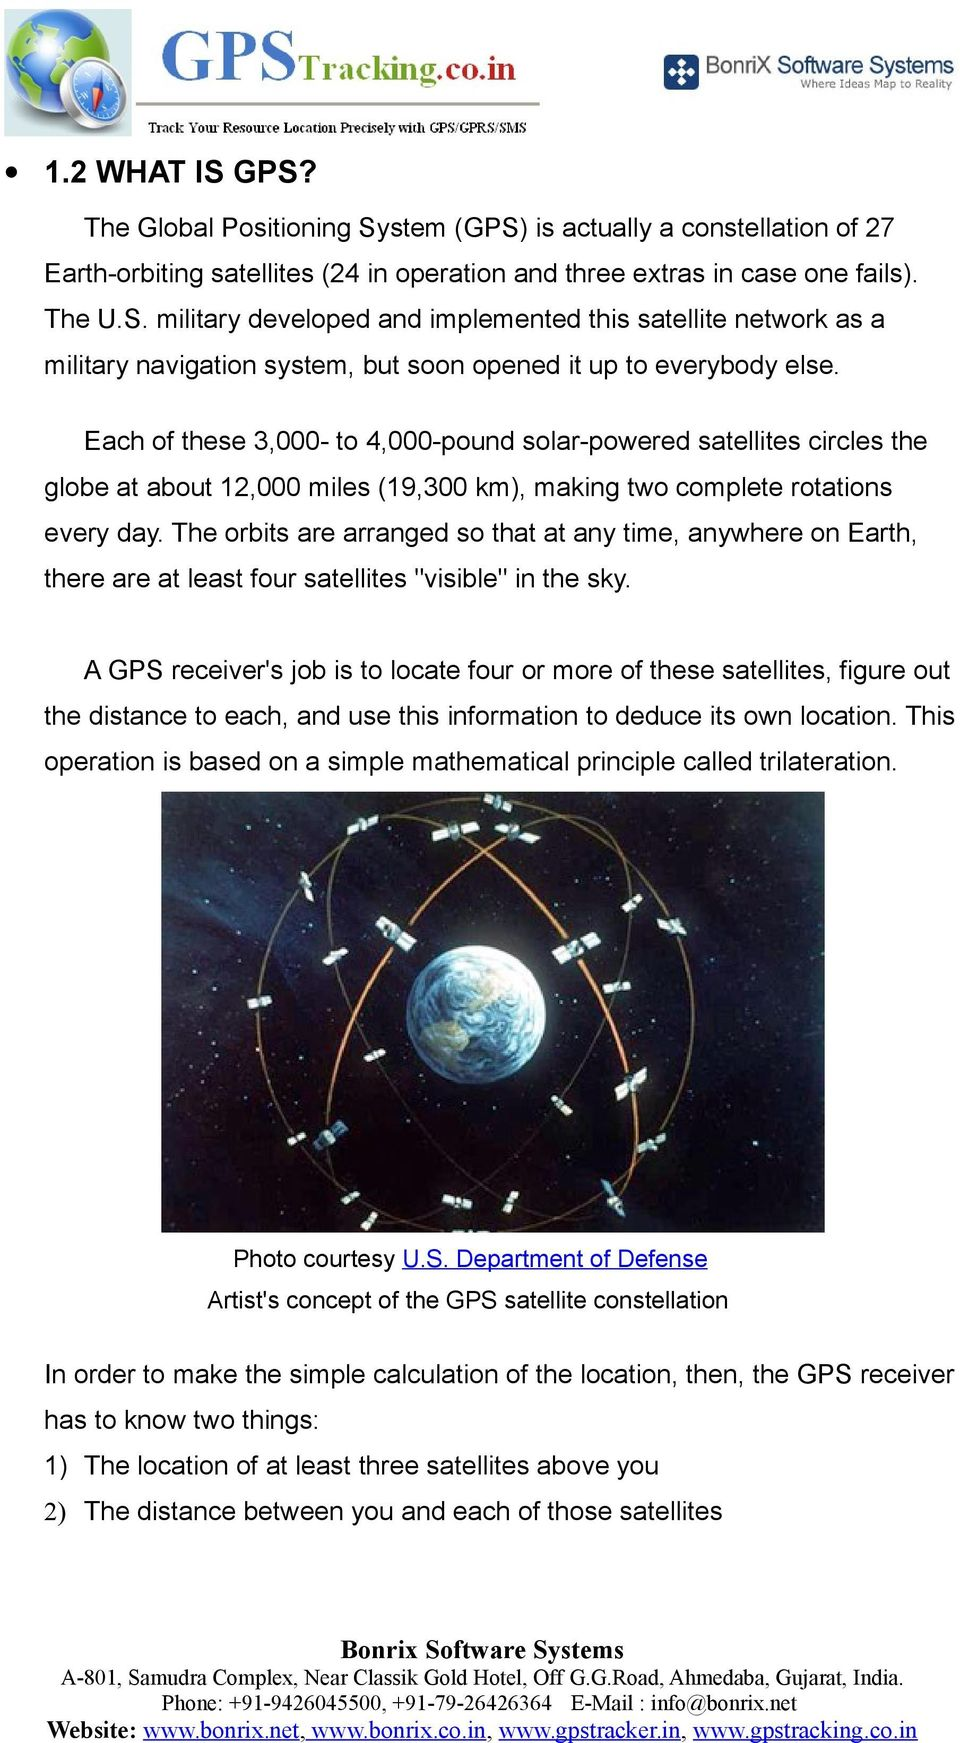 "The orbits are arranged so that at any time, anywhere on Earth, there are at least four satellites ""visible"" in the sky."